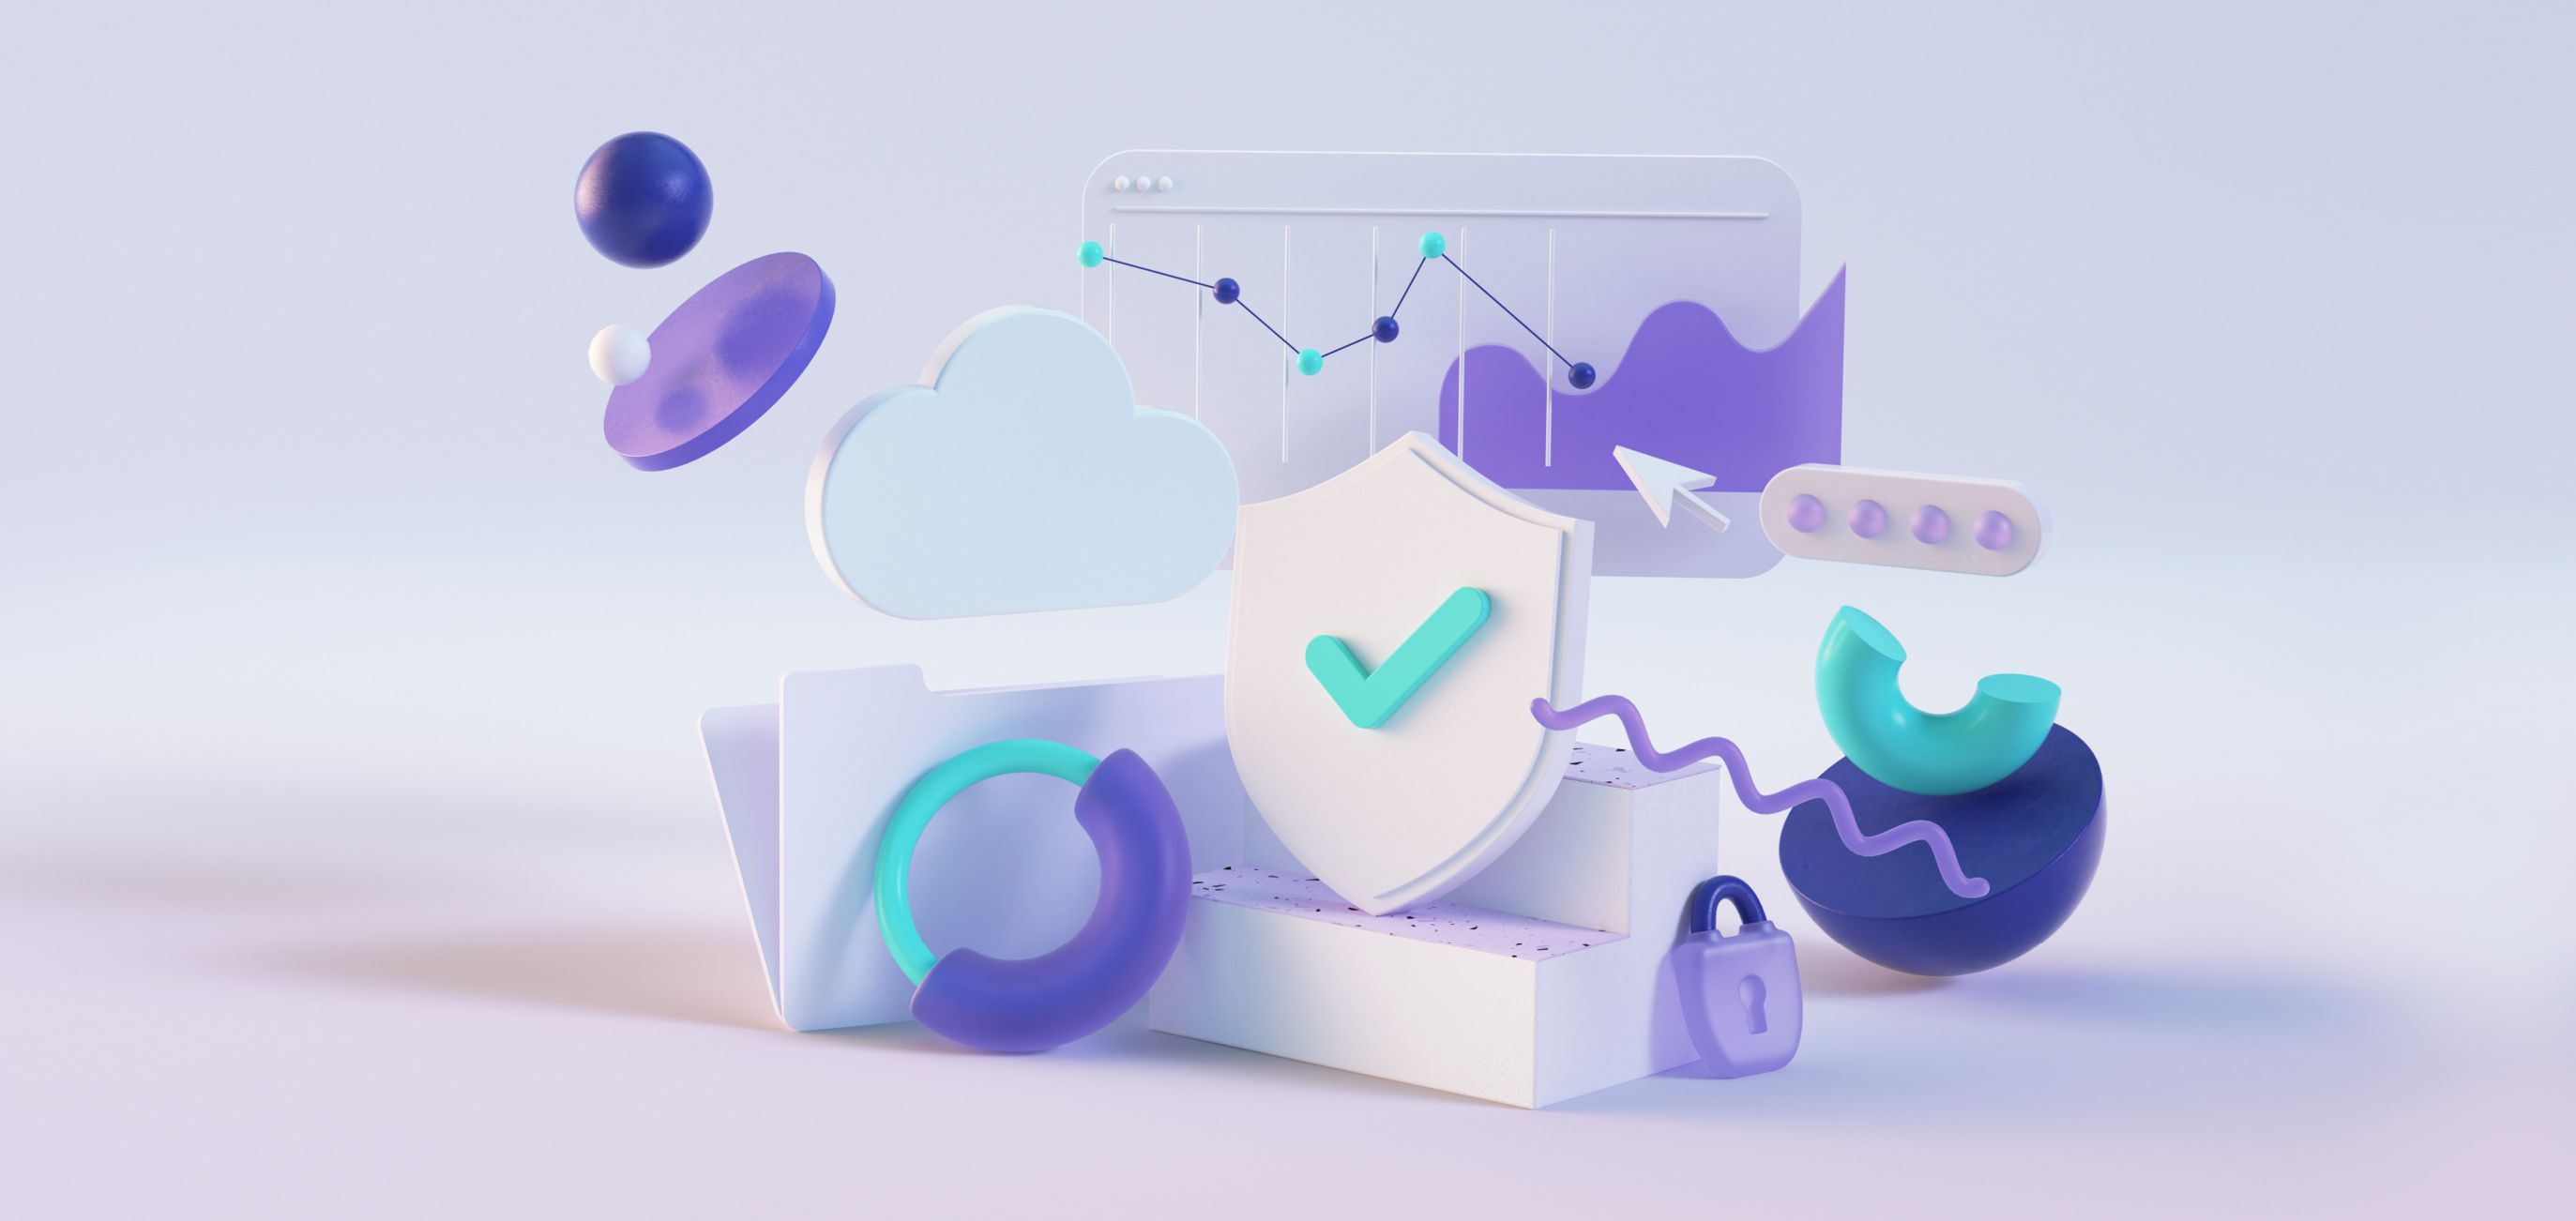 Cyber Insurance Academy graphic elements